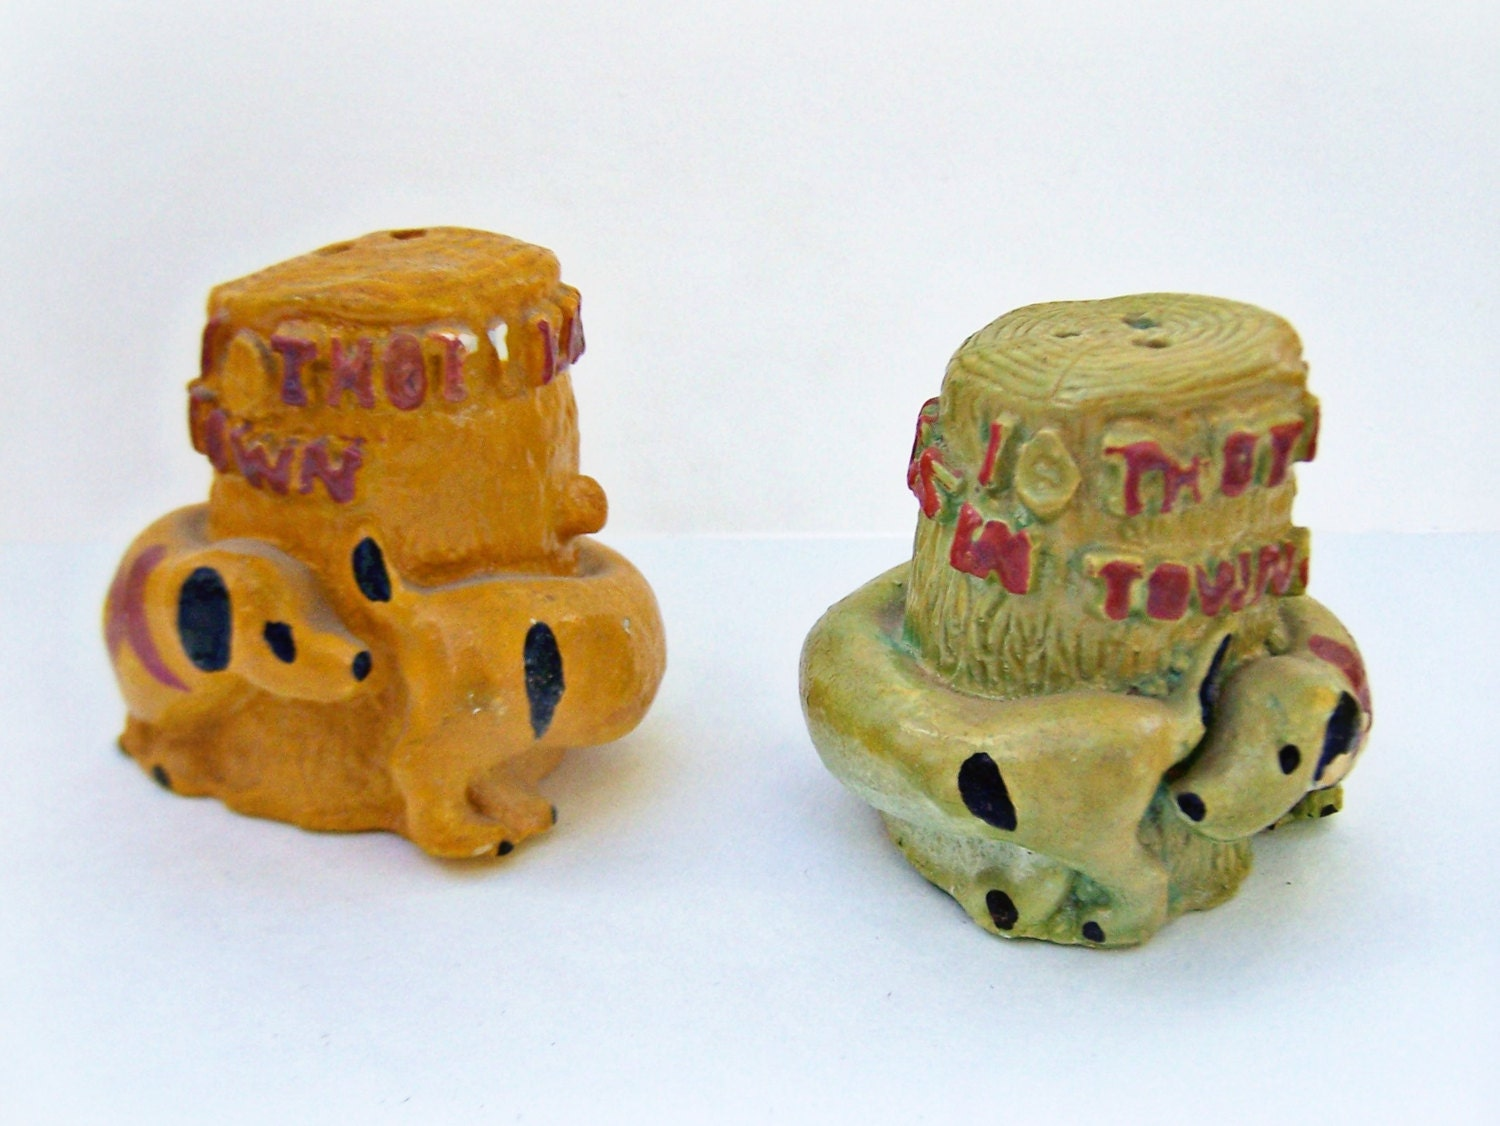 Vintage Novelty Salt And Pepper Chalkware By Shakethatthang